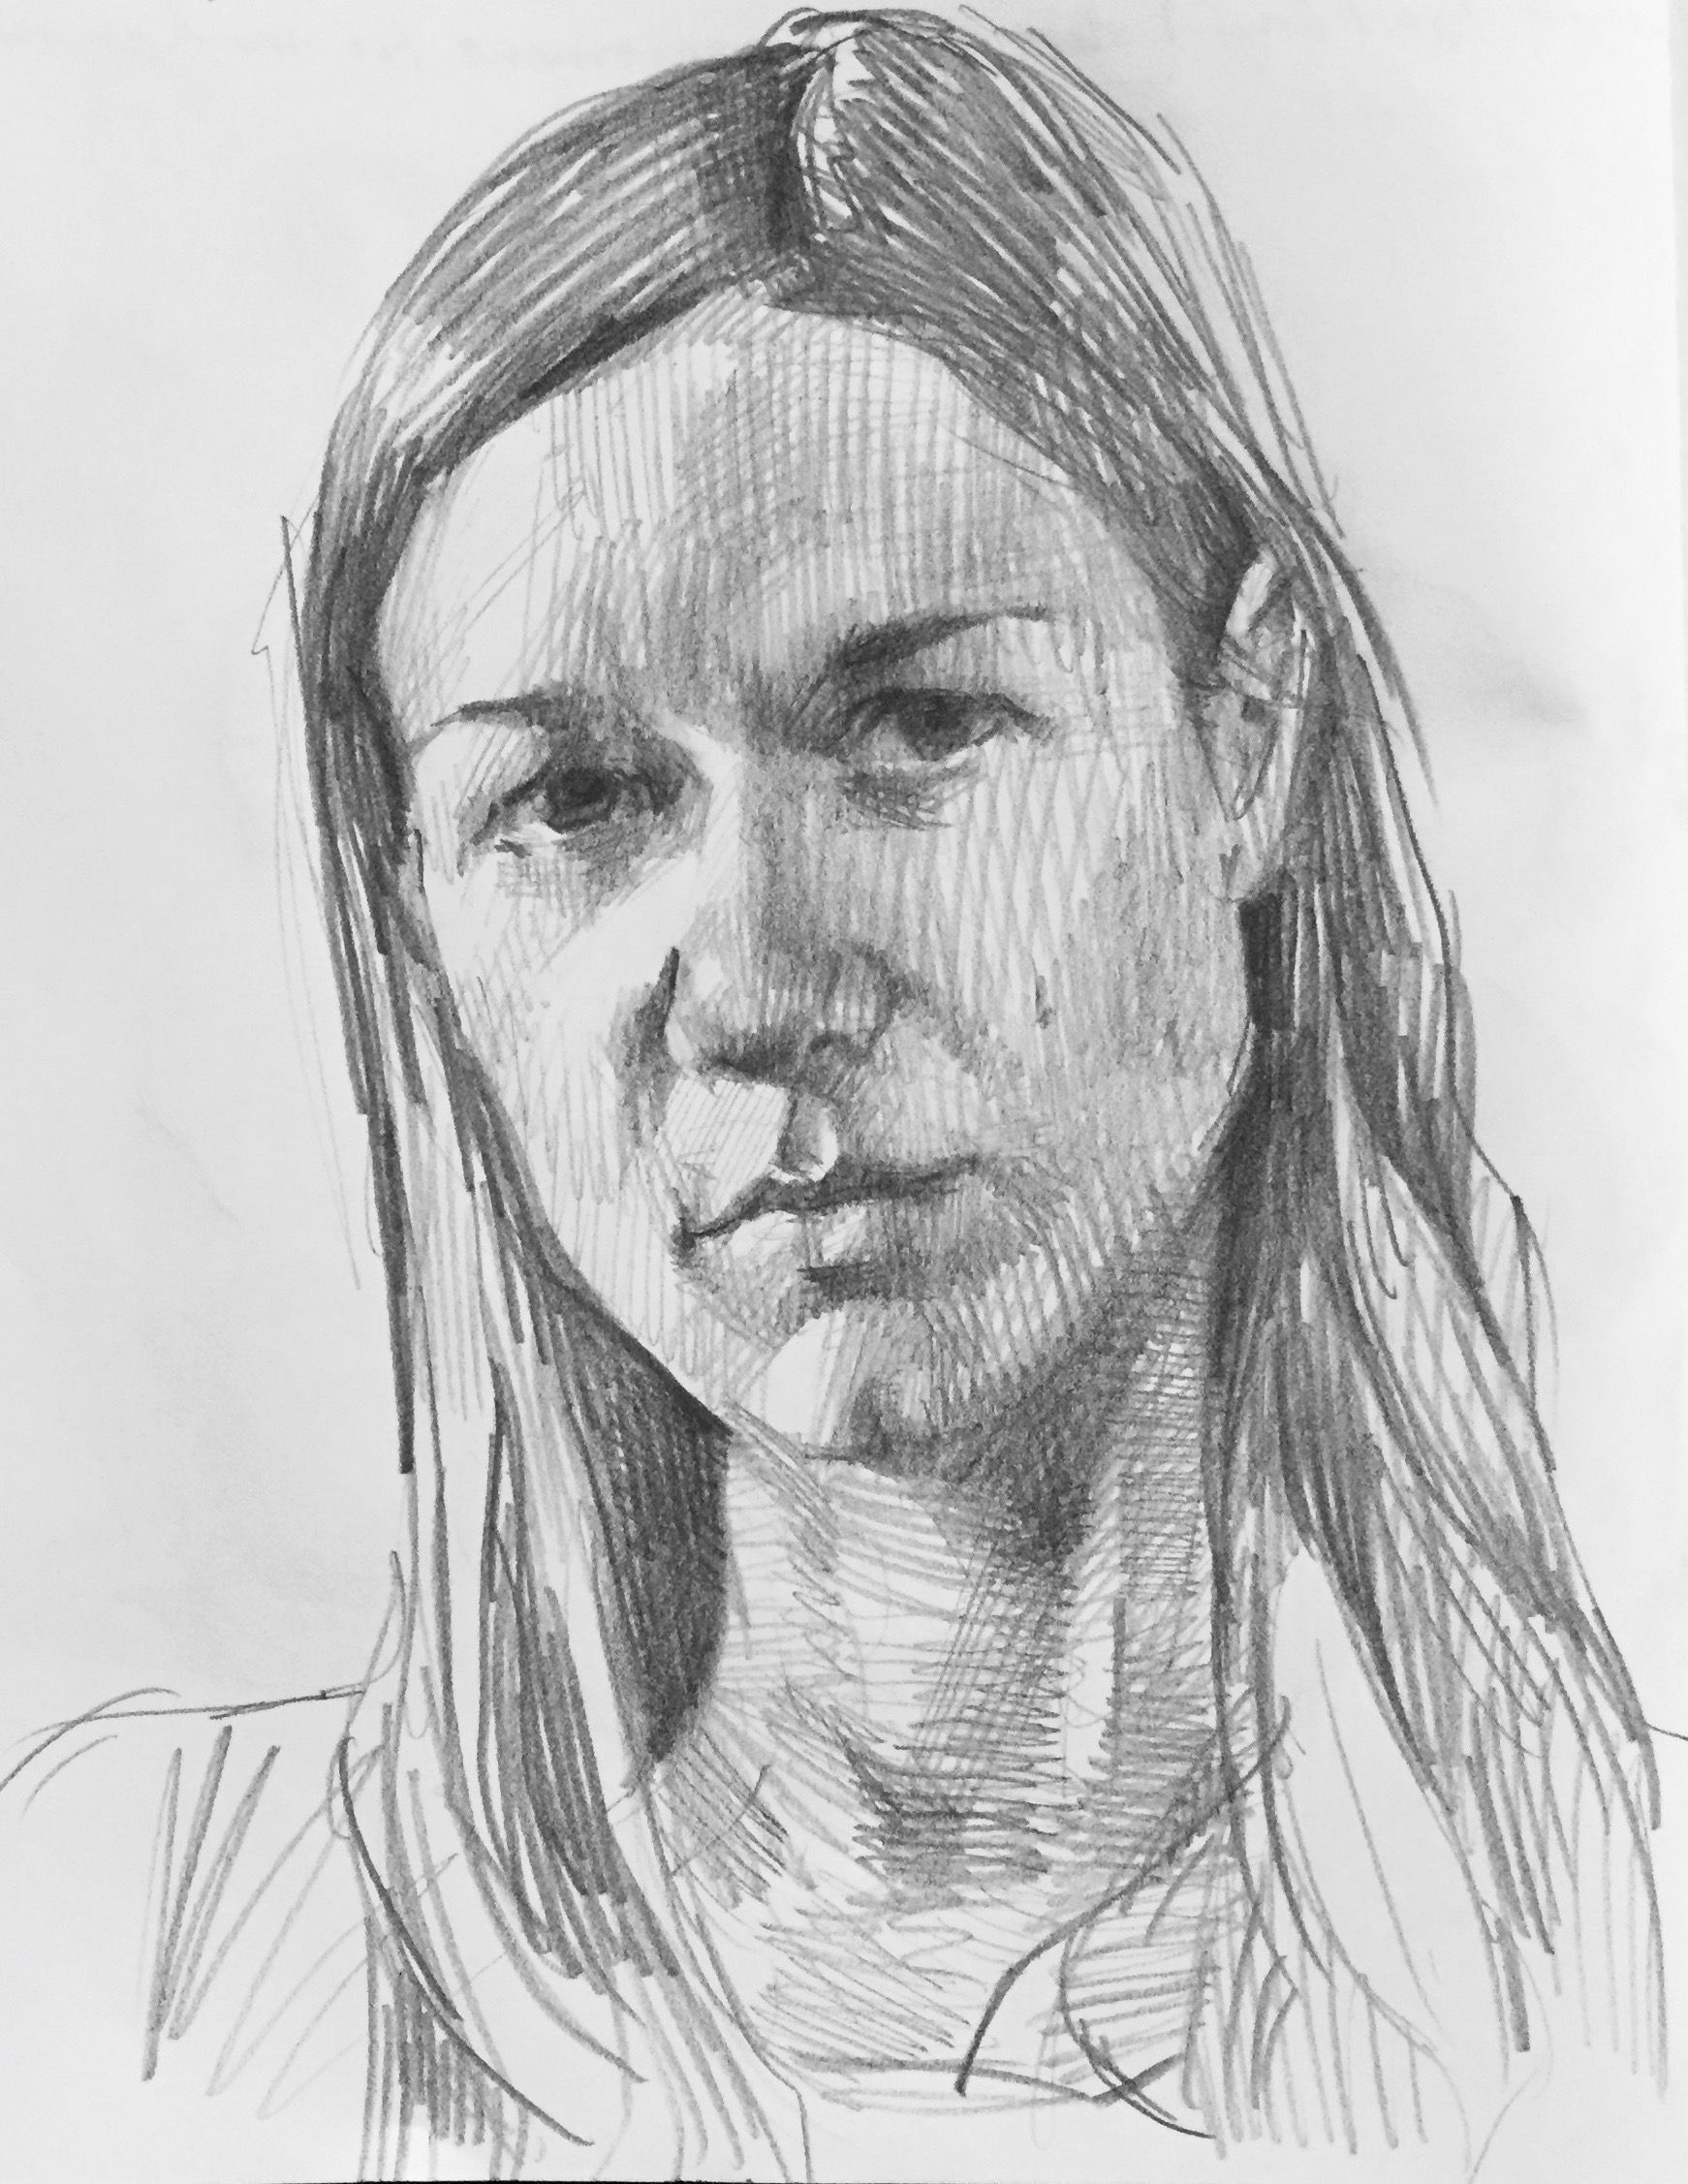 Self portrait art sketch sketchbook pencil graphite drawing by sarah sedwick 2 22 16